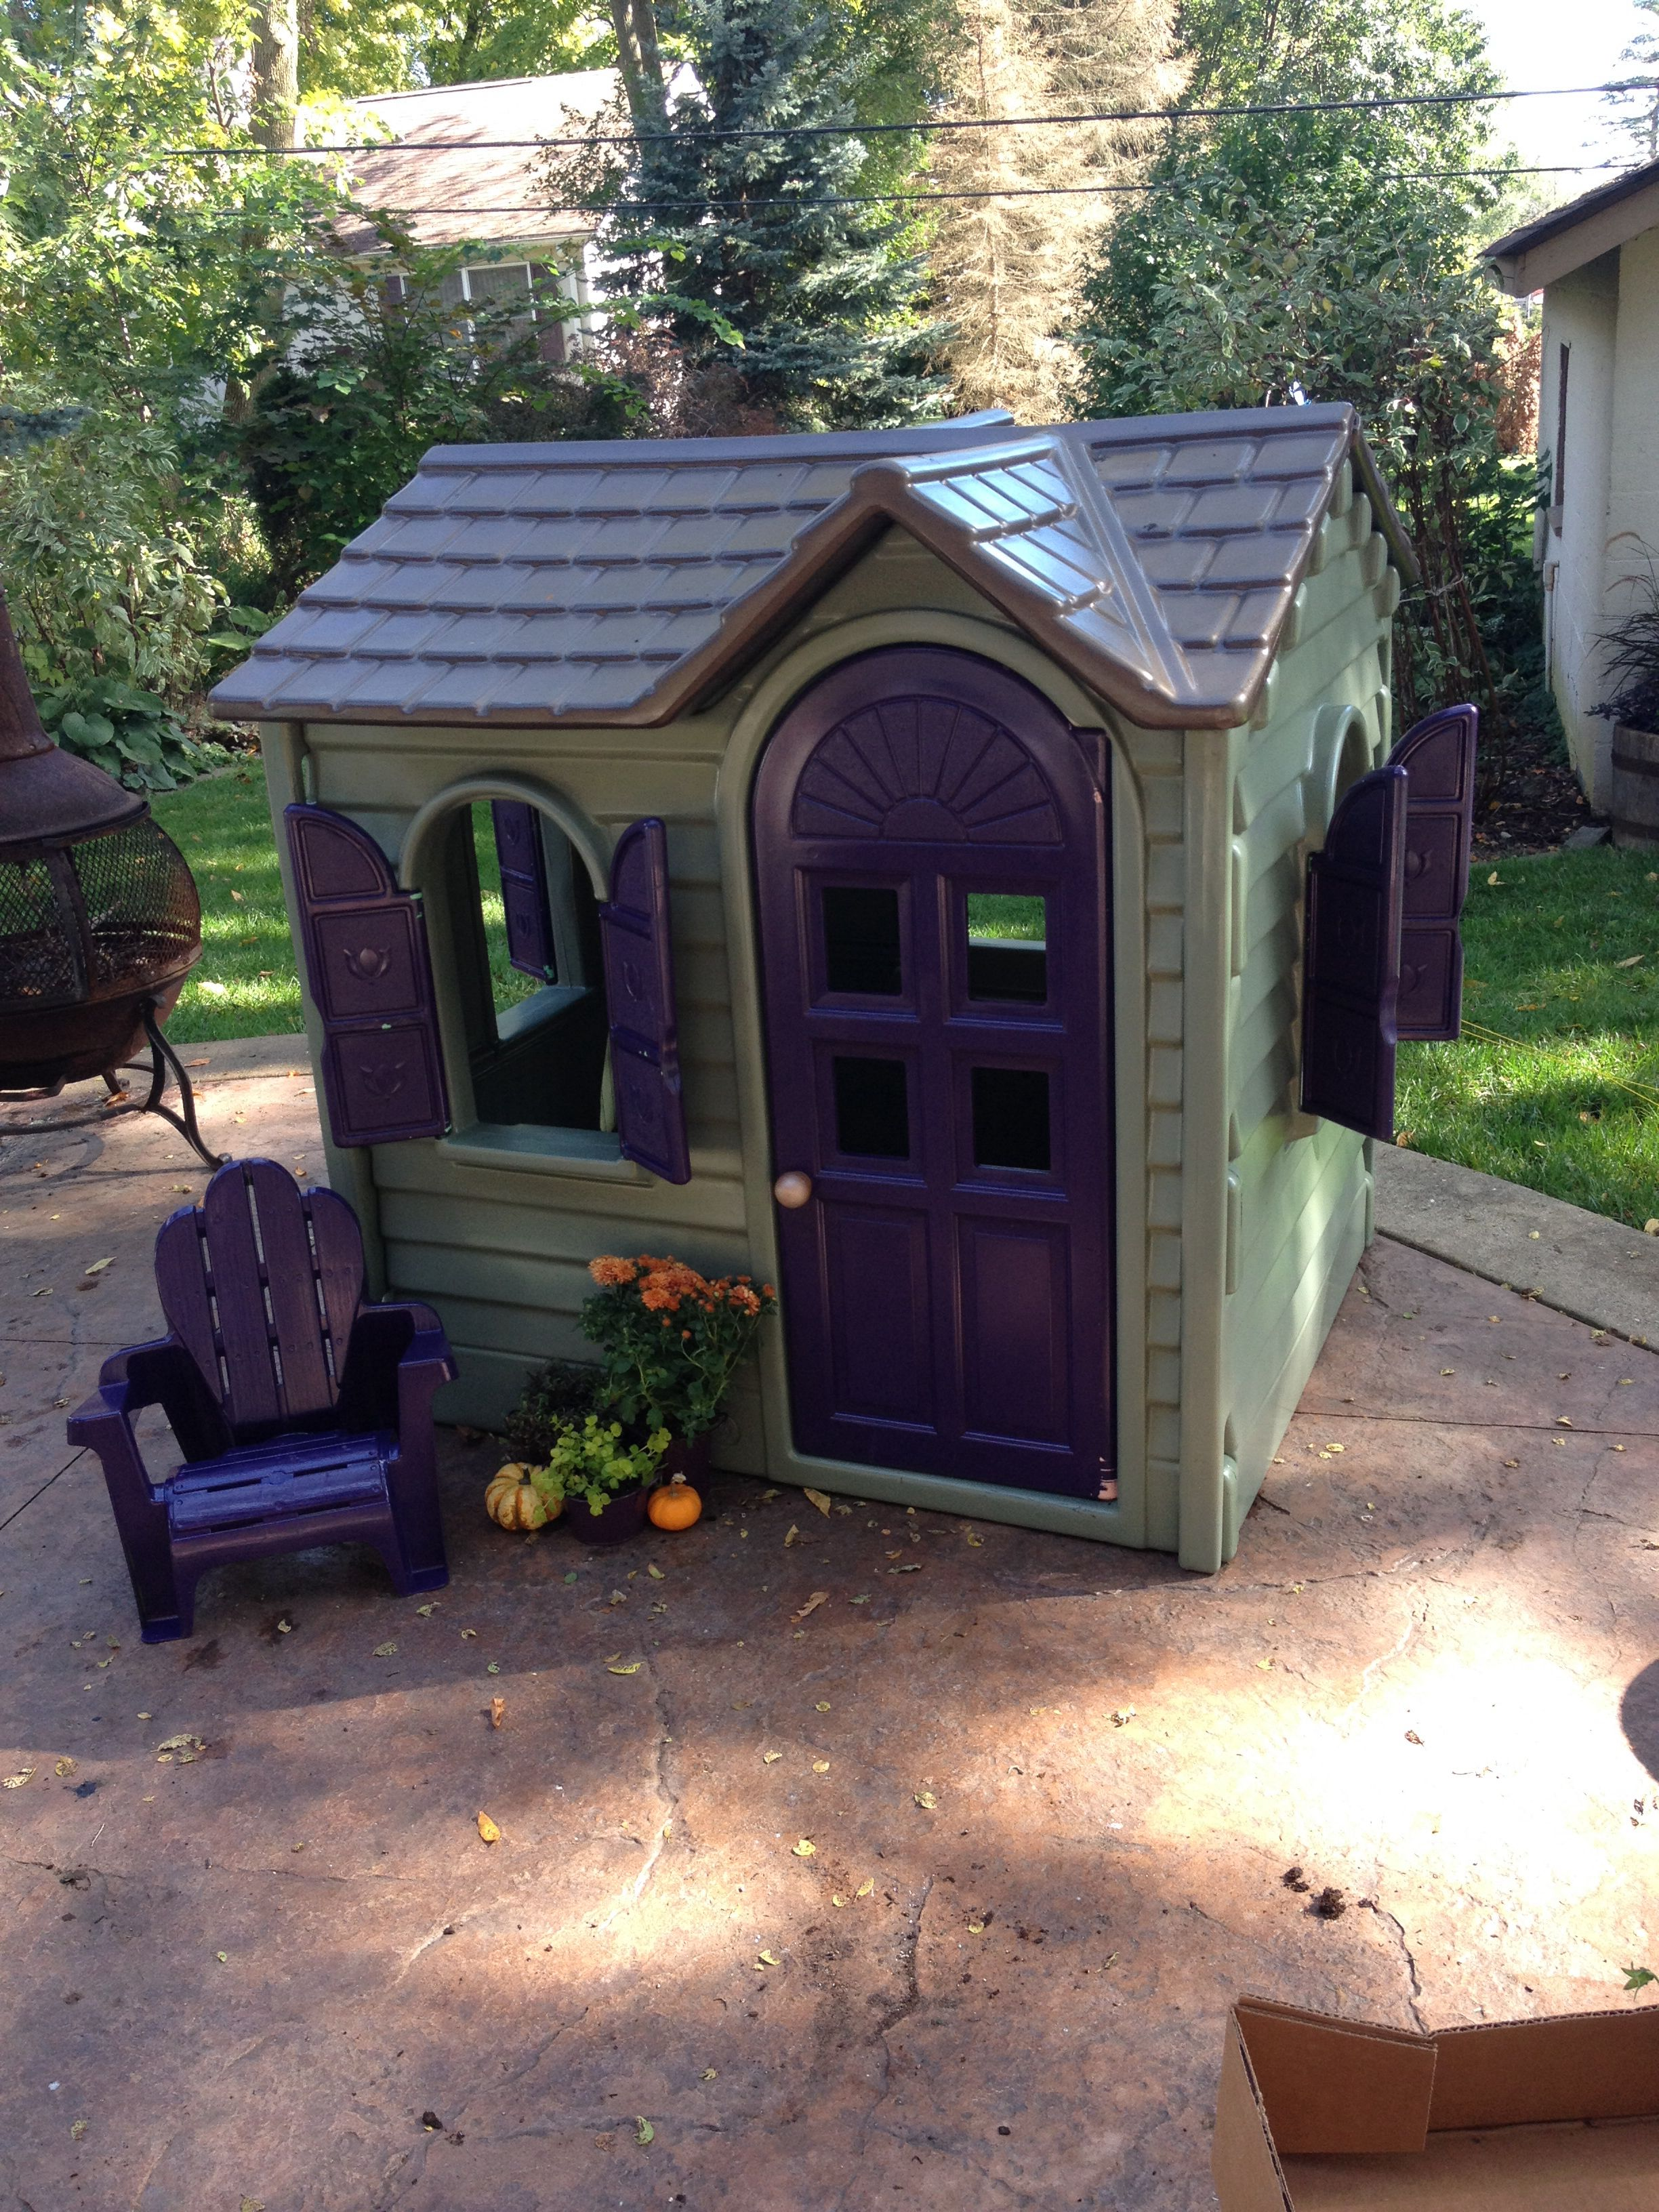 Little tykes play house jazzed up with spray paint Bought a cheap